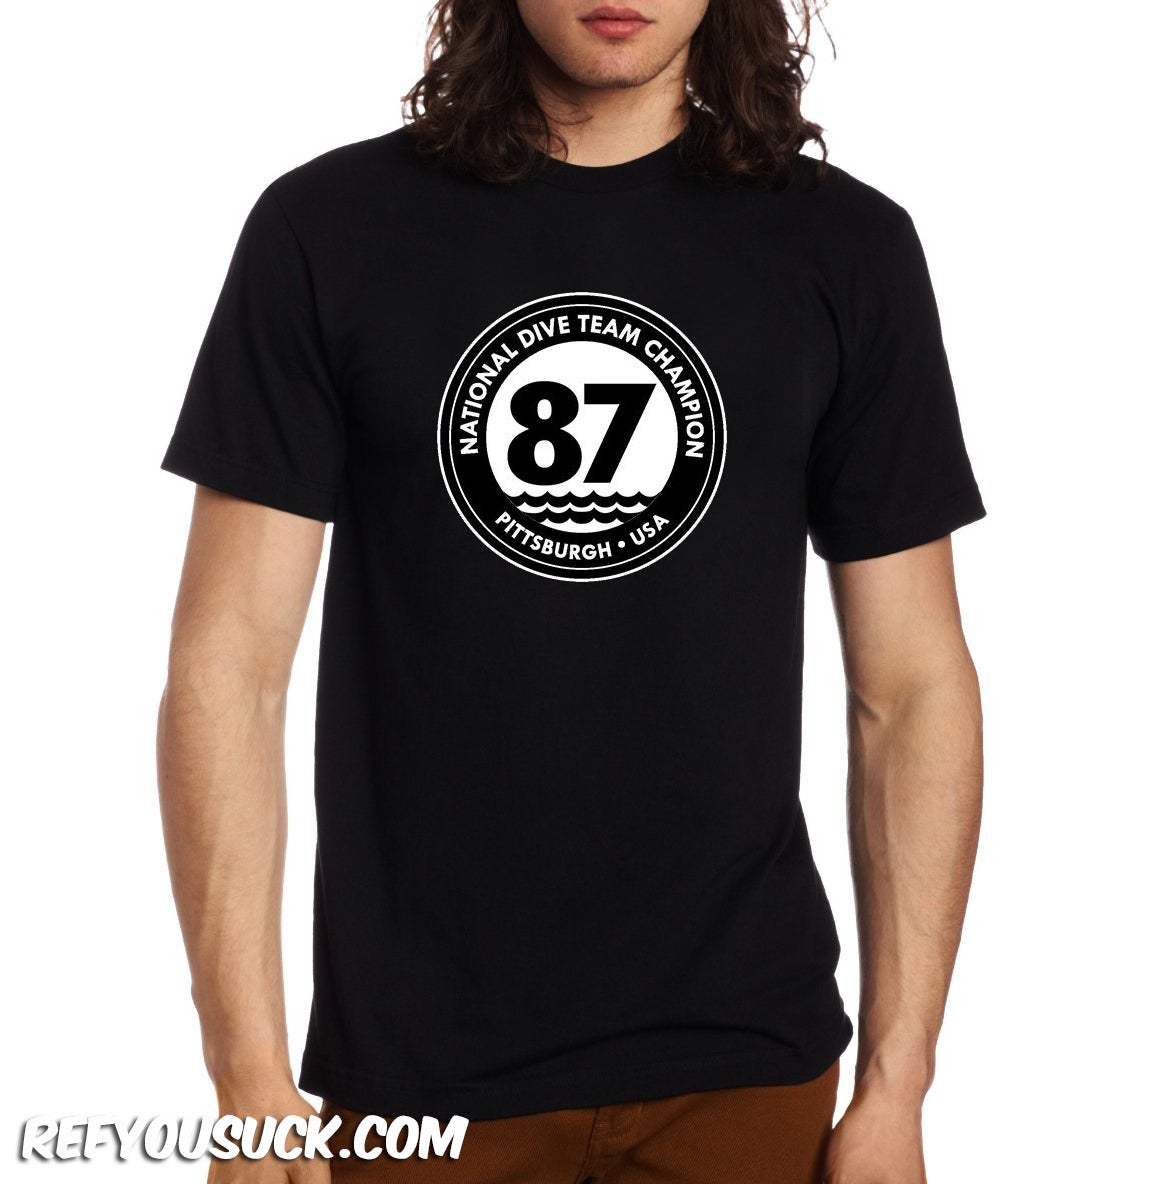 Image of National Dive Team Champ #87 - Mens & Womens T-Shirt